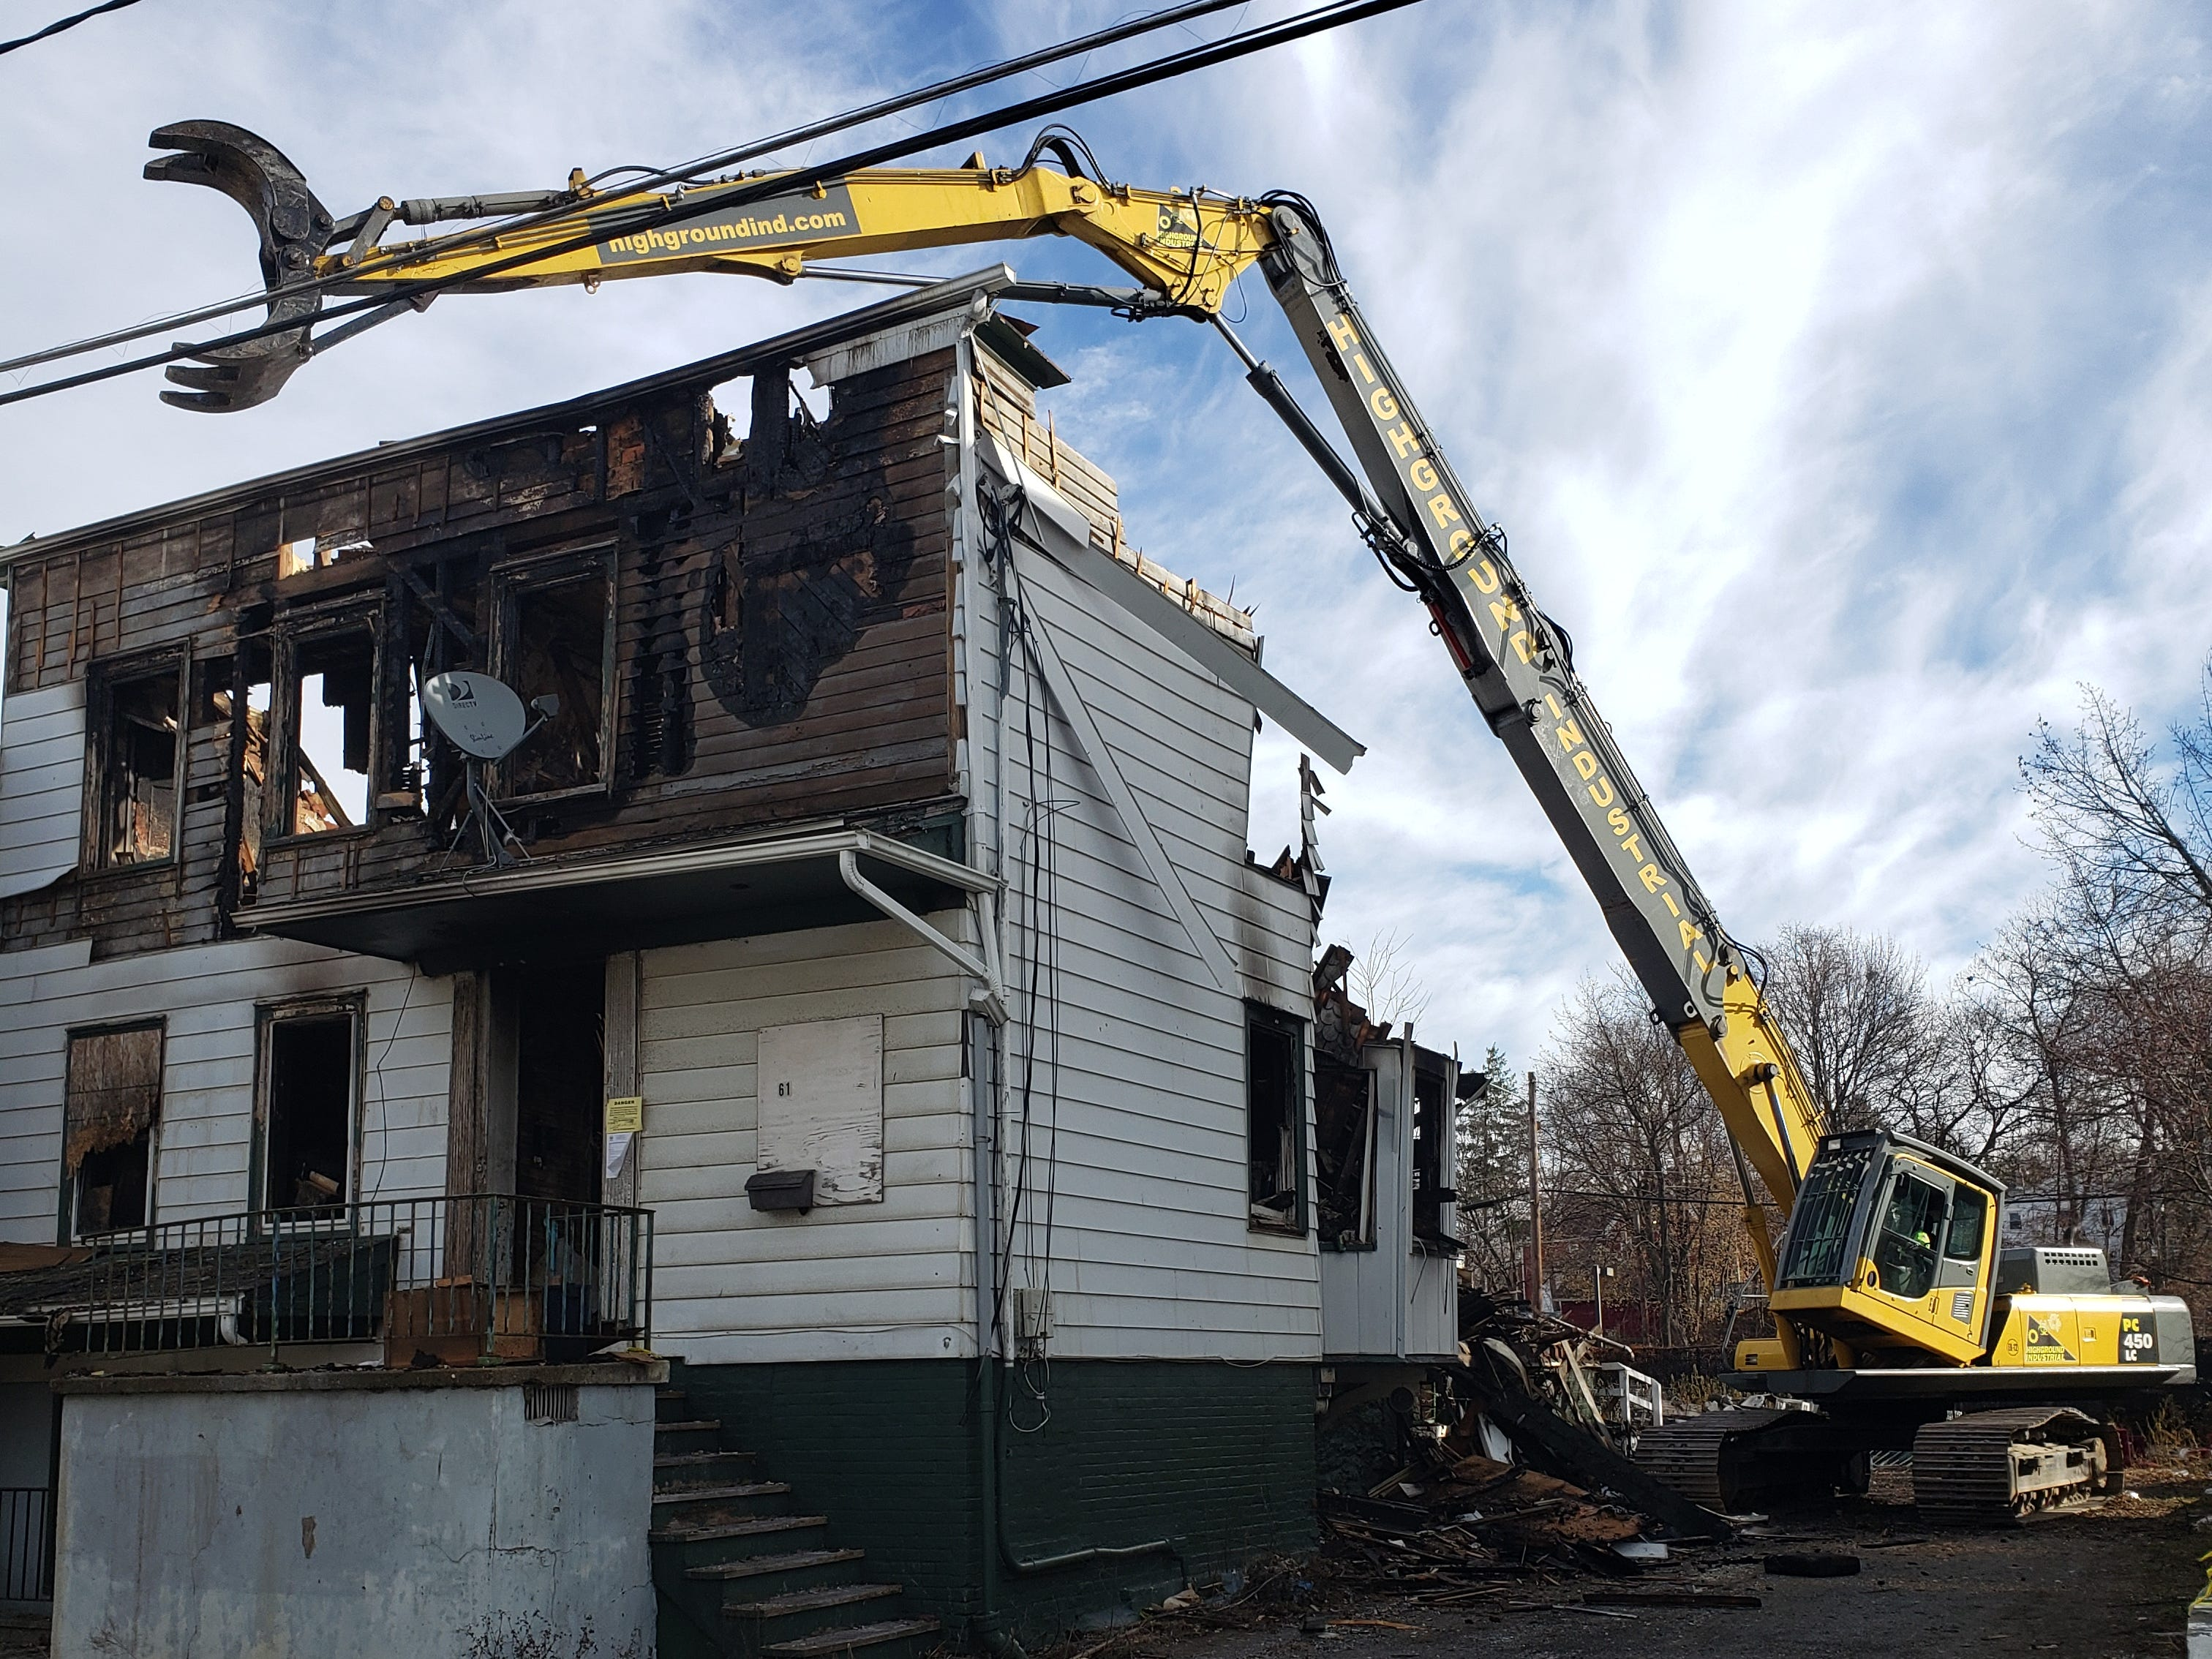 Academy Street fire victims identified: medical examiner